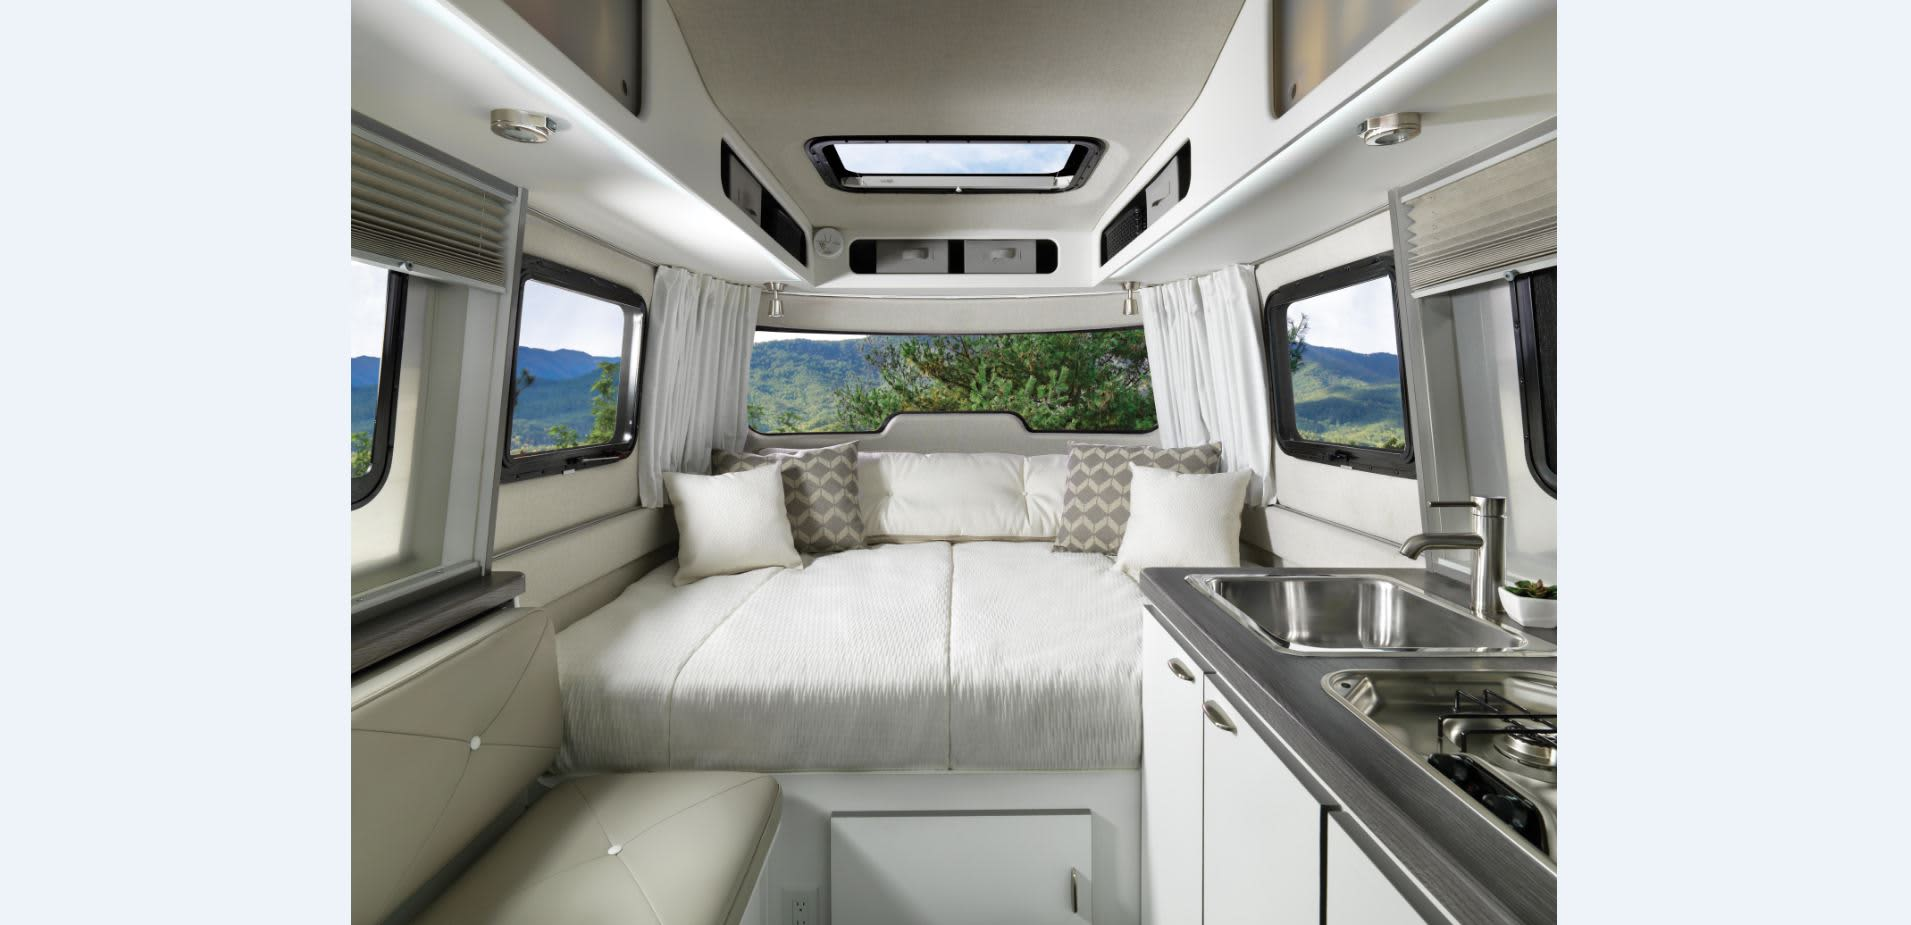 7 New Rv Models Taking Classic Summer Vehicle Into The Future Off Grid Solar Power System On An Recreational Or